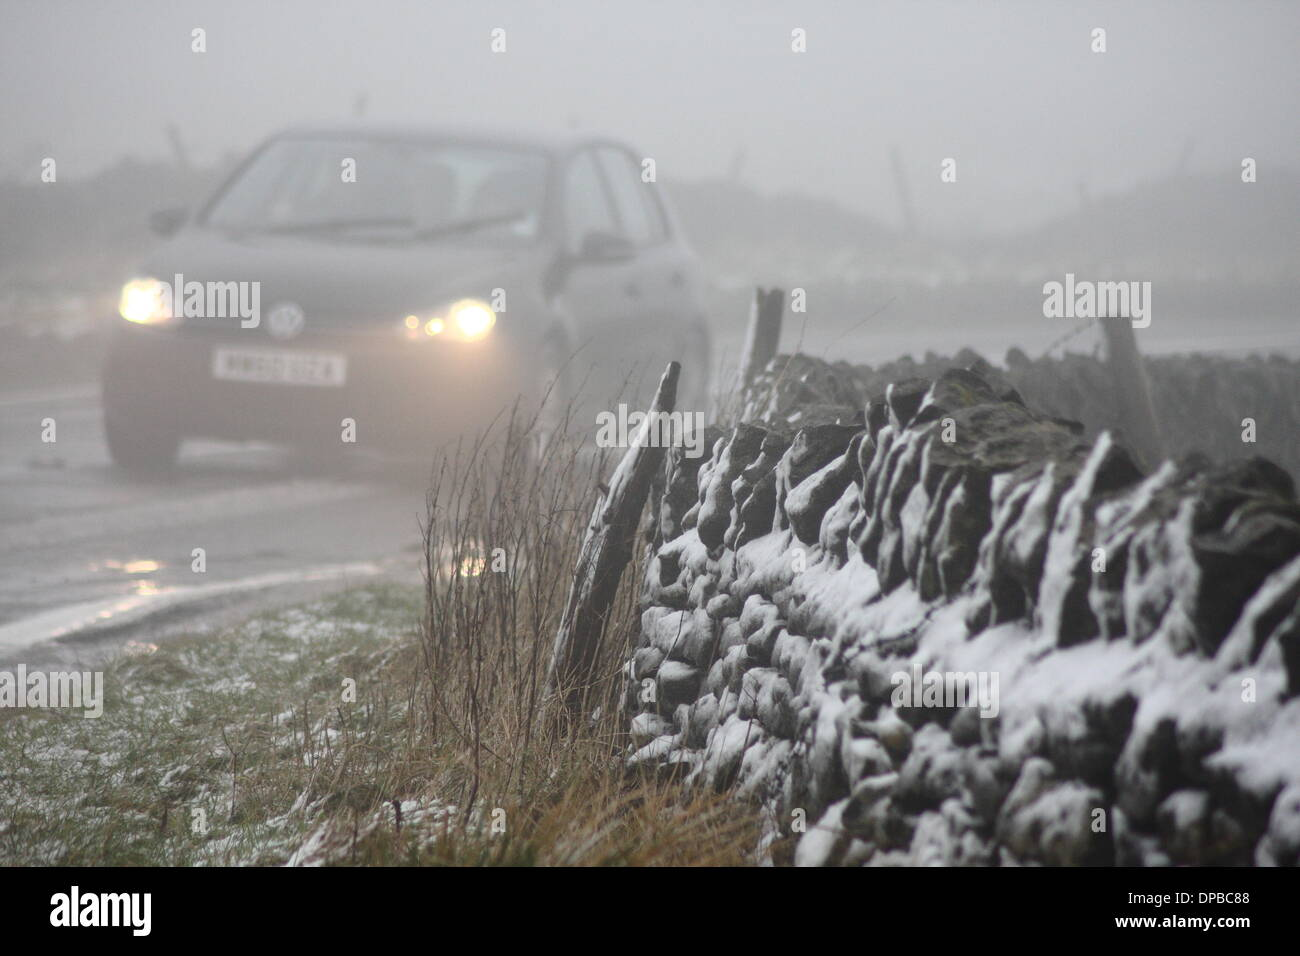 Peak District, Derbyshire, UK. 11th January 2014.  11 Jan 2014. Wintry conditions on the A6187 near Castleton made for extra tricky driving conditions after overnight snowfall hit stretches of high ground iin Derbyshire's Peak District. Credit:  Matthew Taylor/Alamy Live News - Stock Image